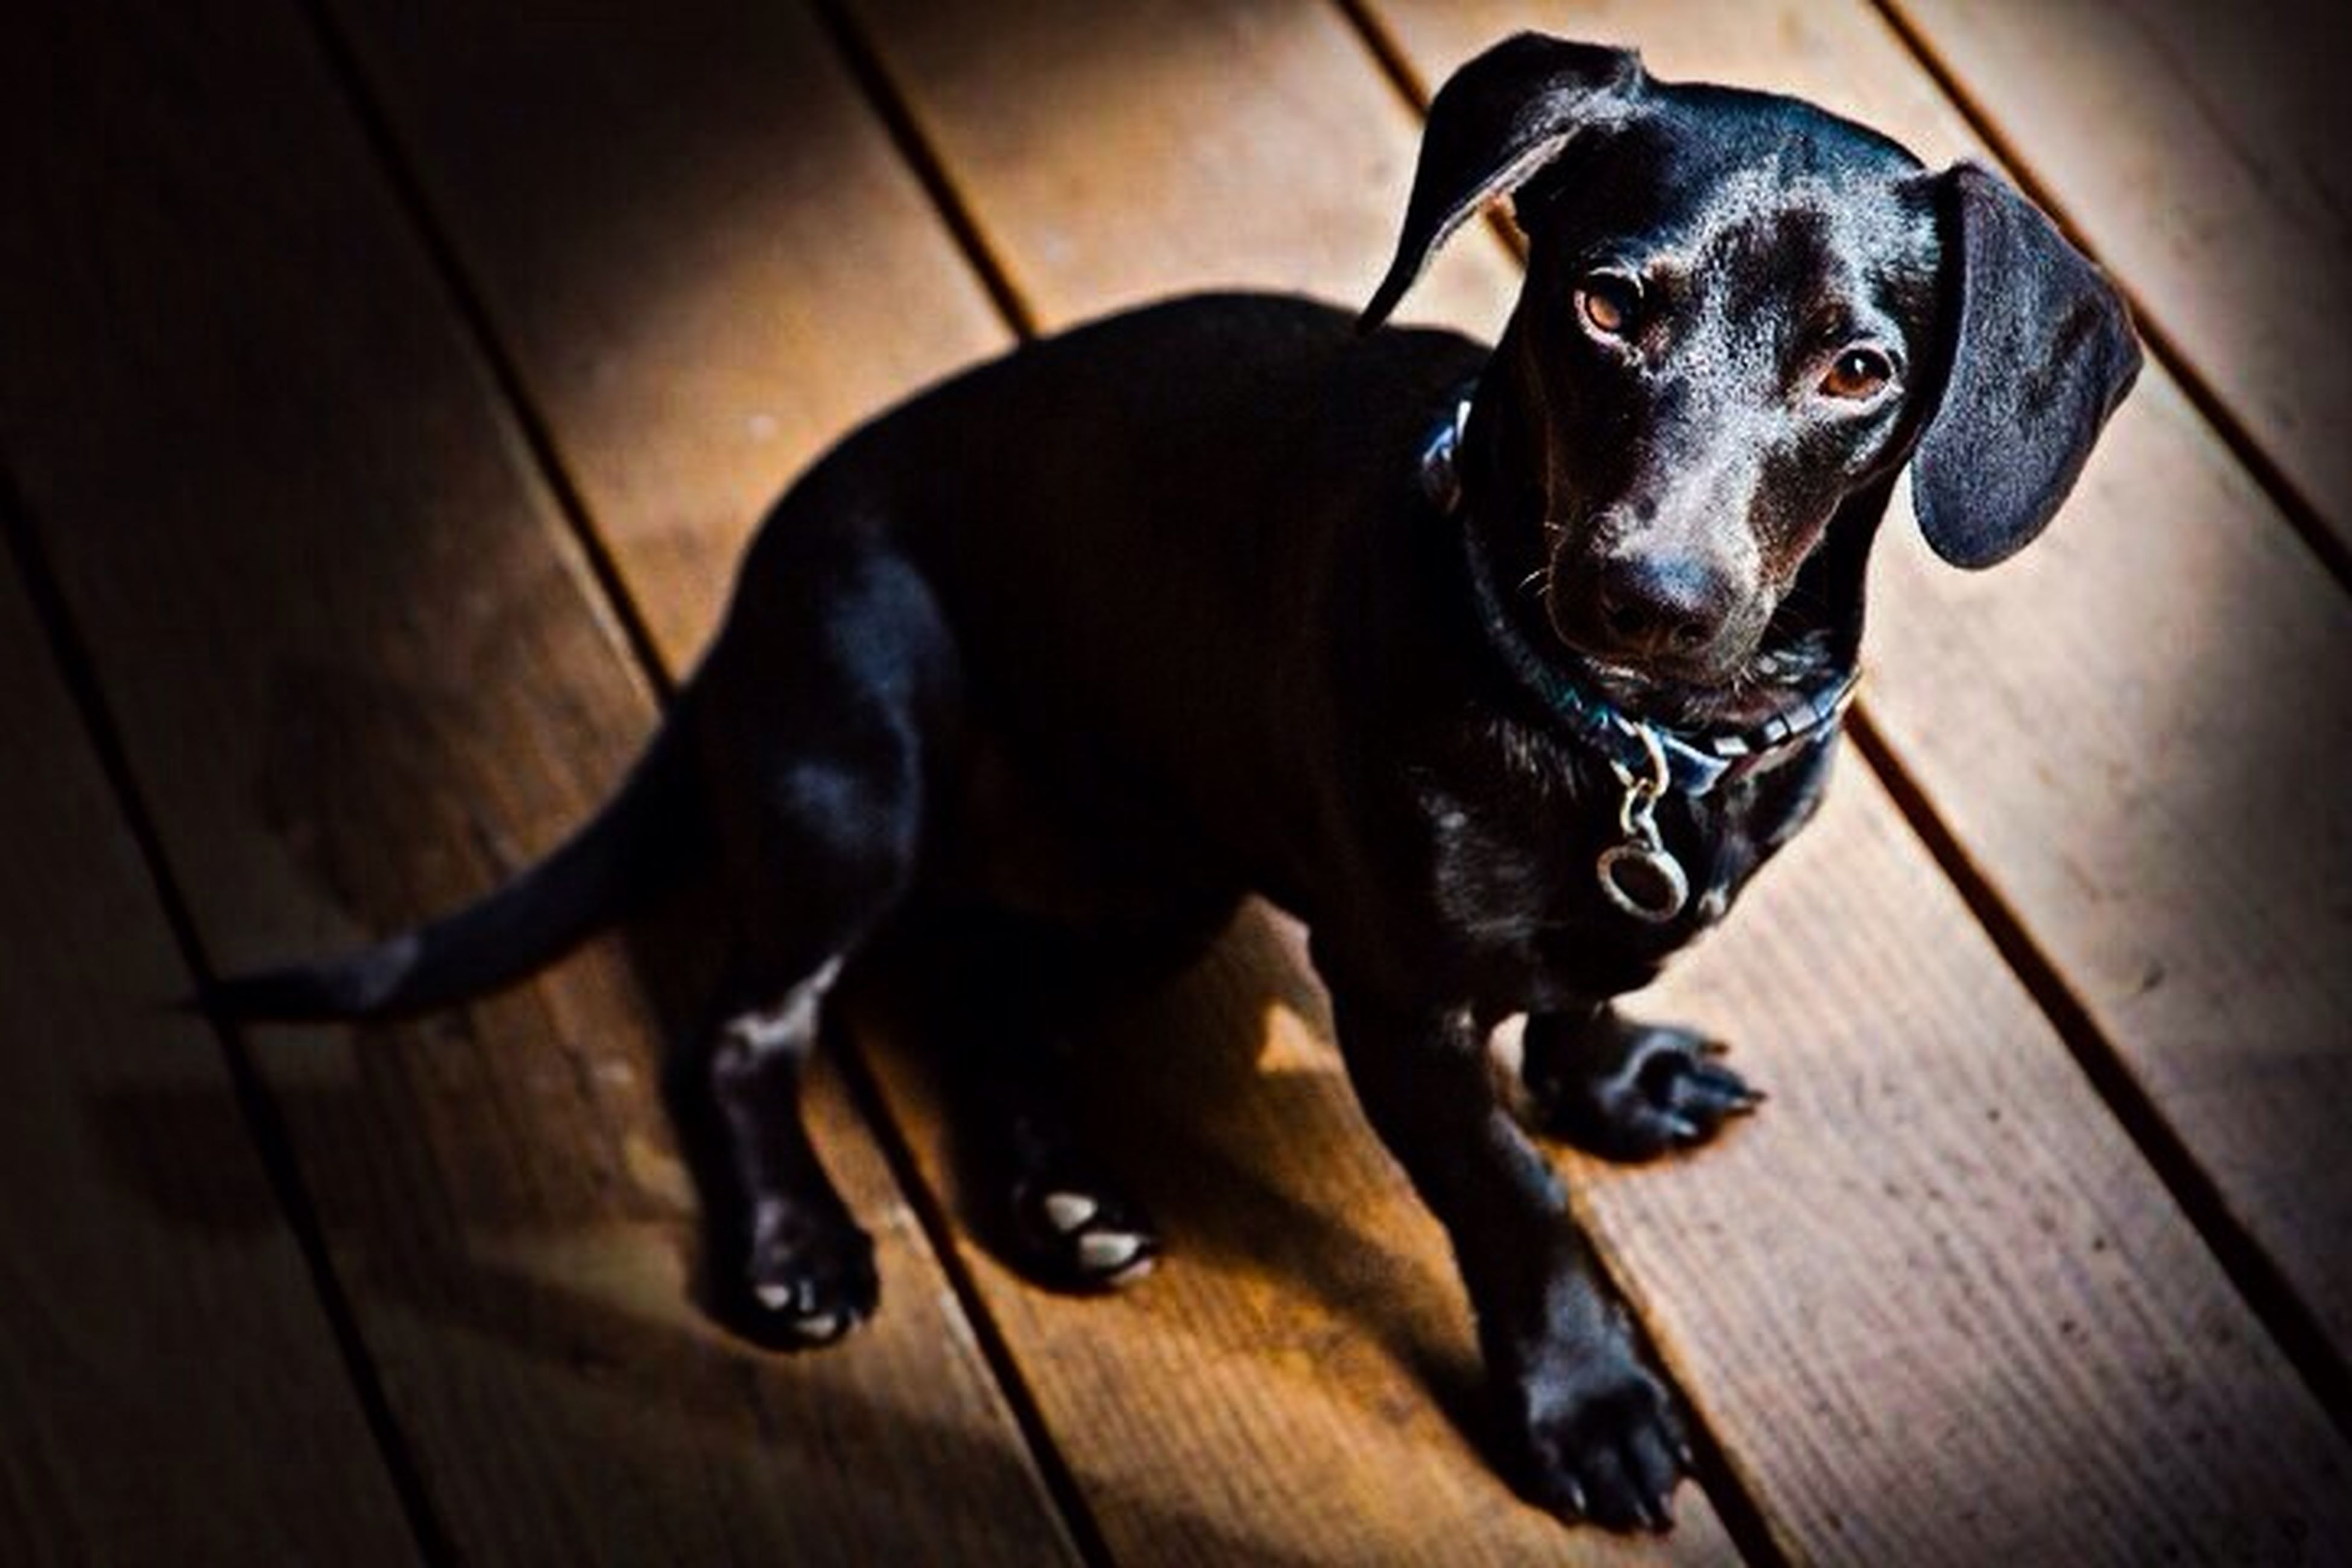 pets, domestic animals, dog, animal themes, indoors, one animal, mammal, looking at camera, hardwood floor, flooring, black color, portrait, home interior, high angle view, floor, relaxation, lying down, animal head, sitting, home